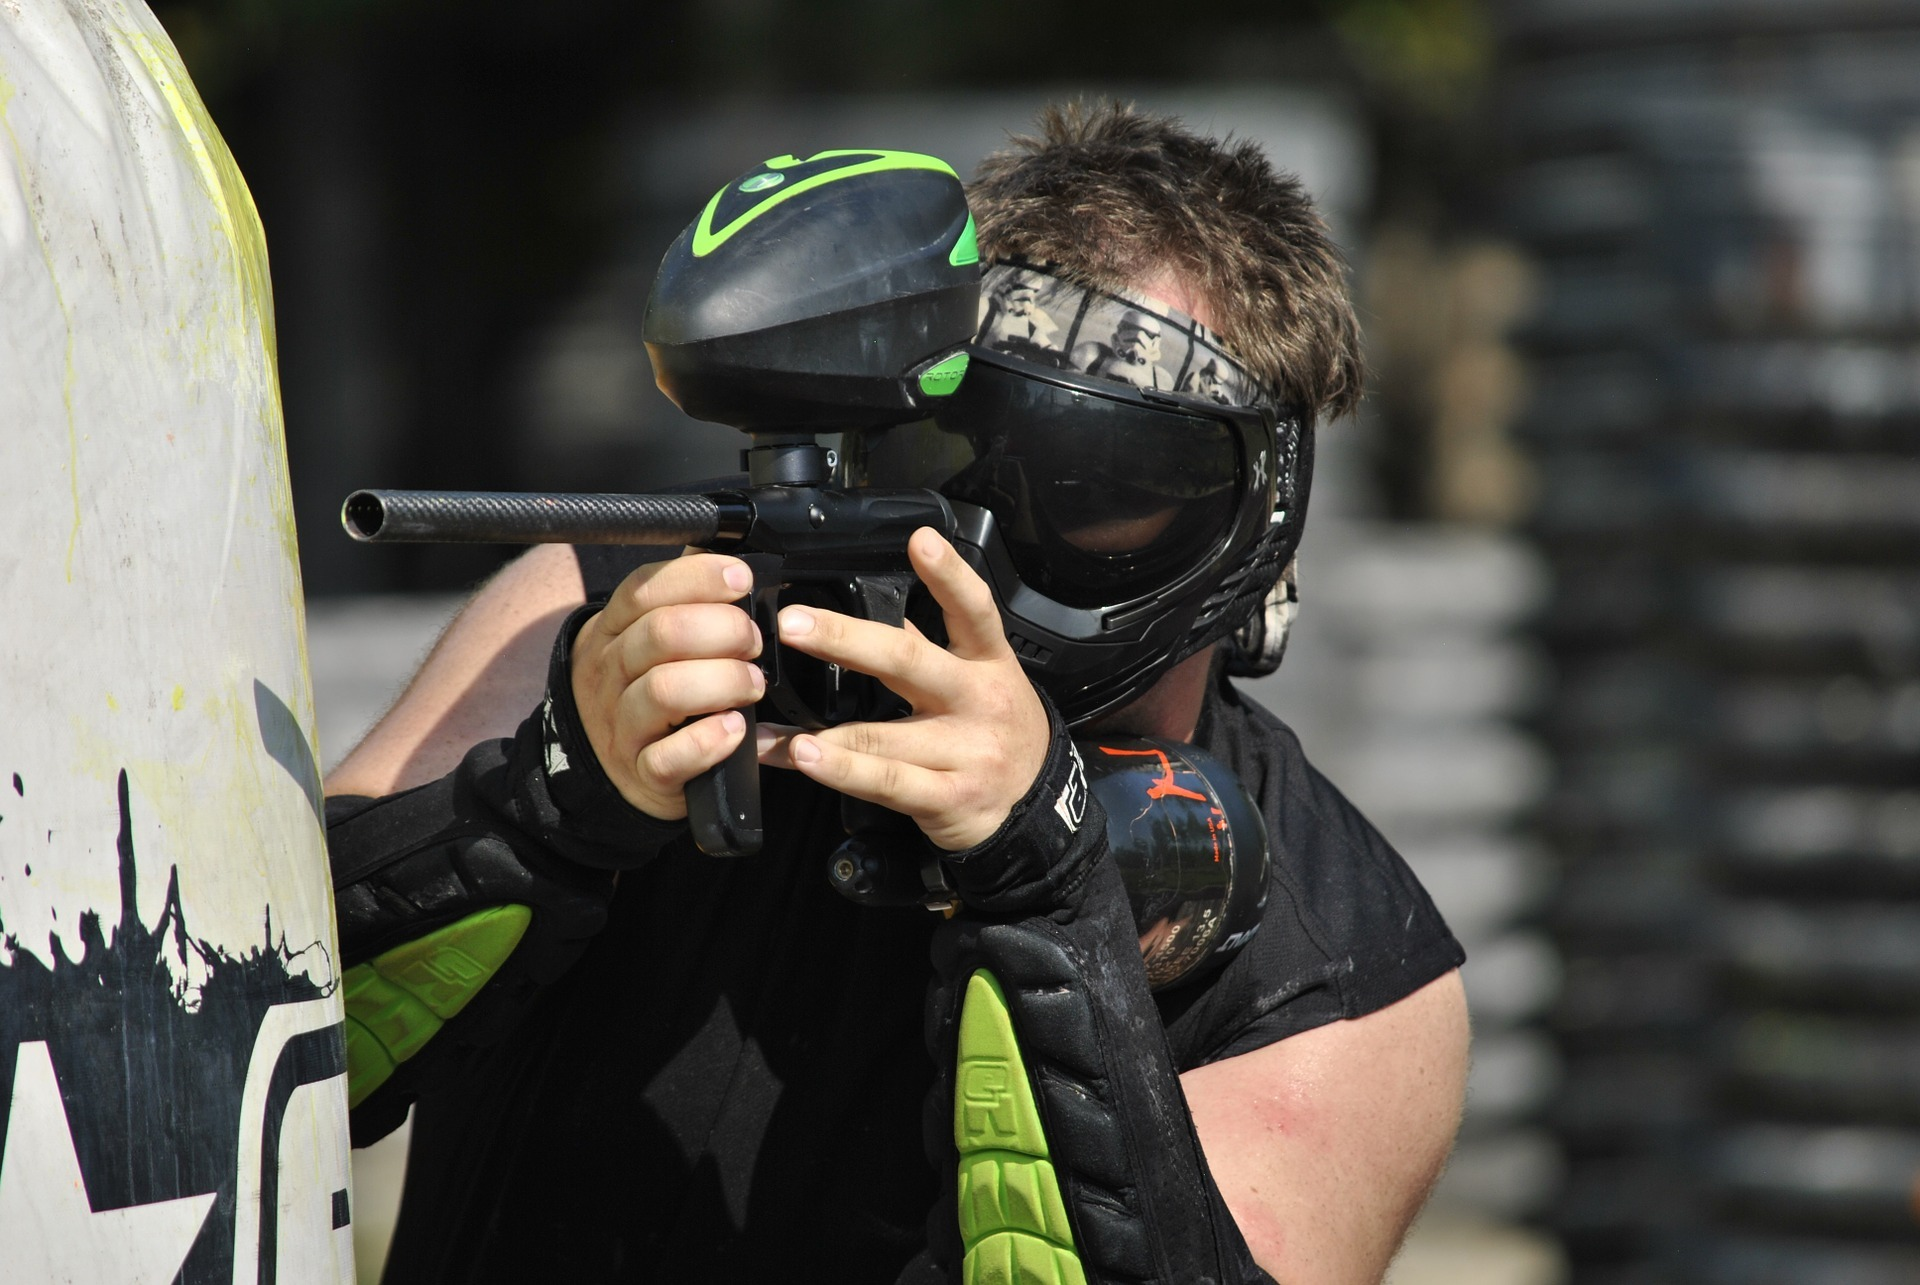 Man playing Paintball Gun Shooting